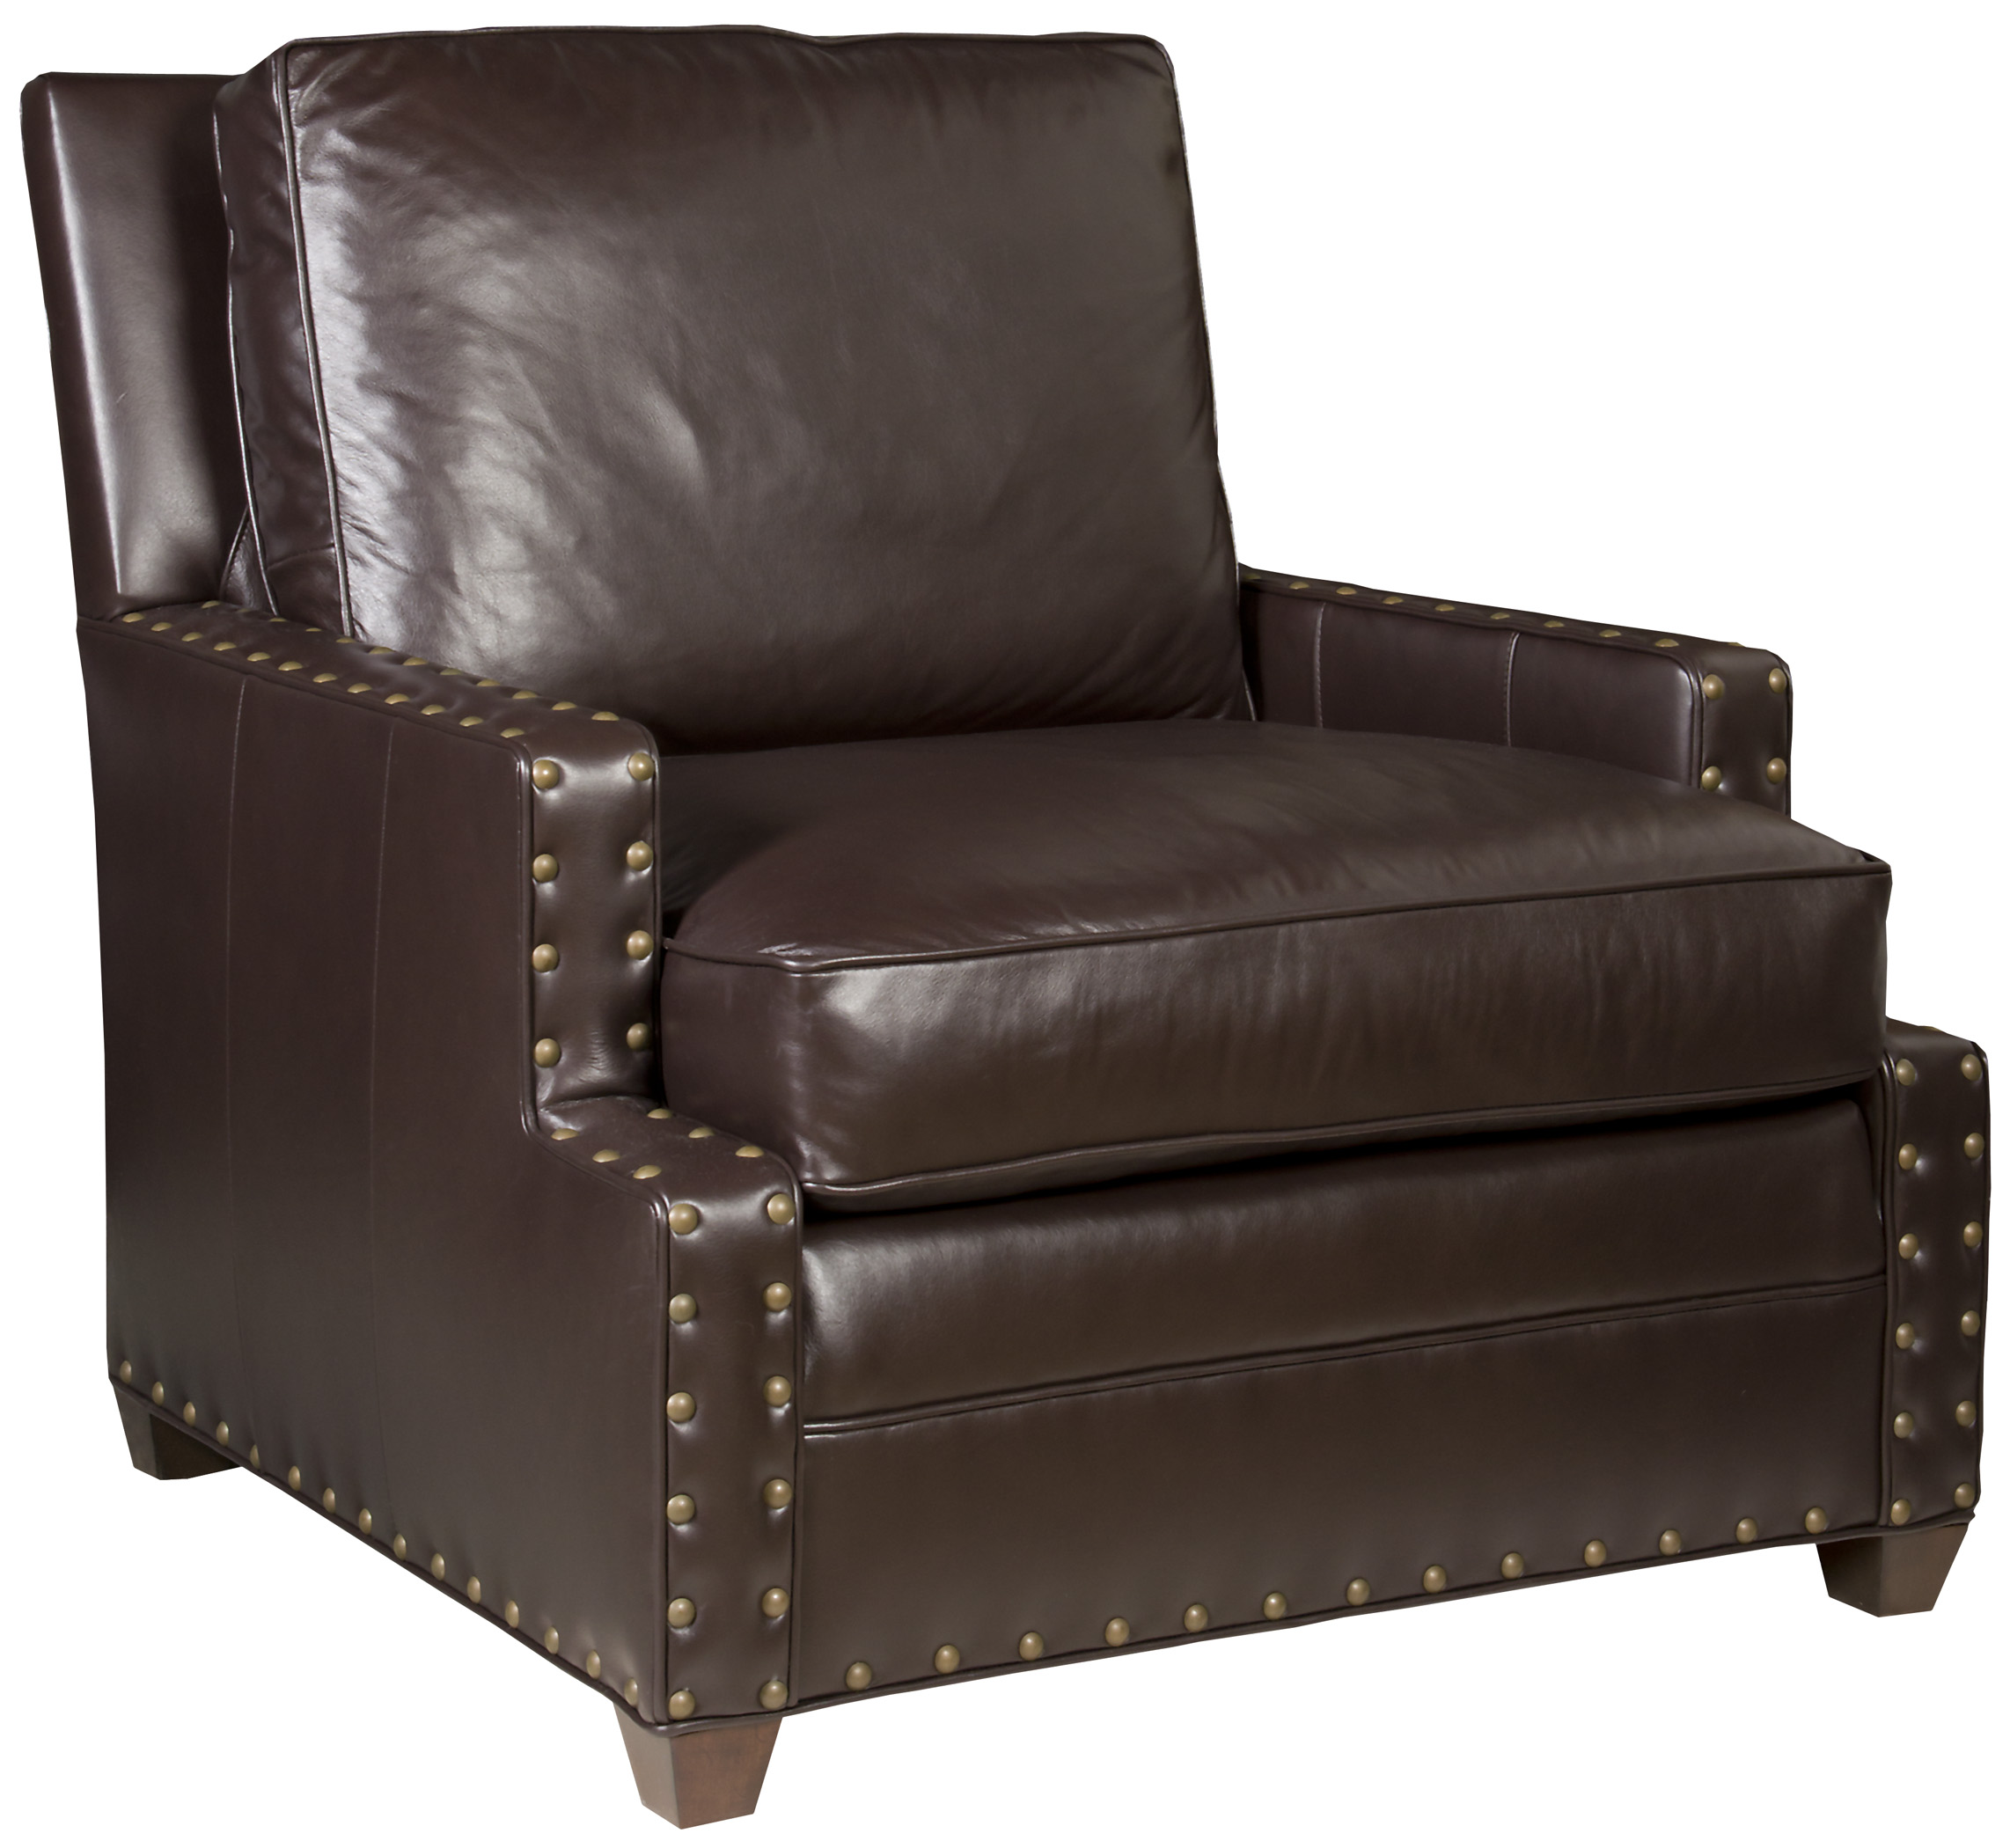 Vanguard Furniture Our Products L649 CH Marshall Chair